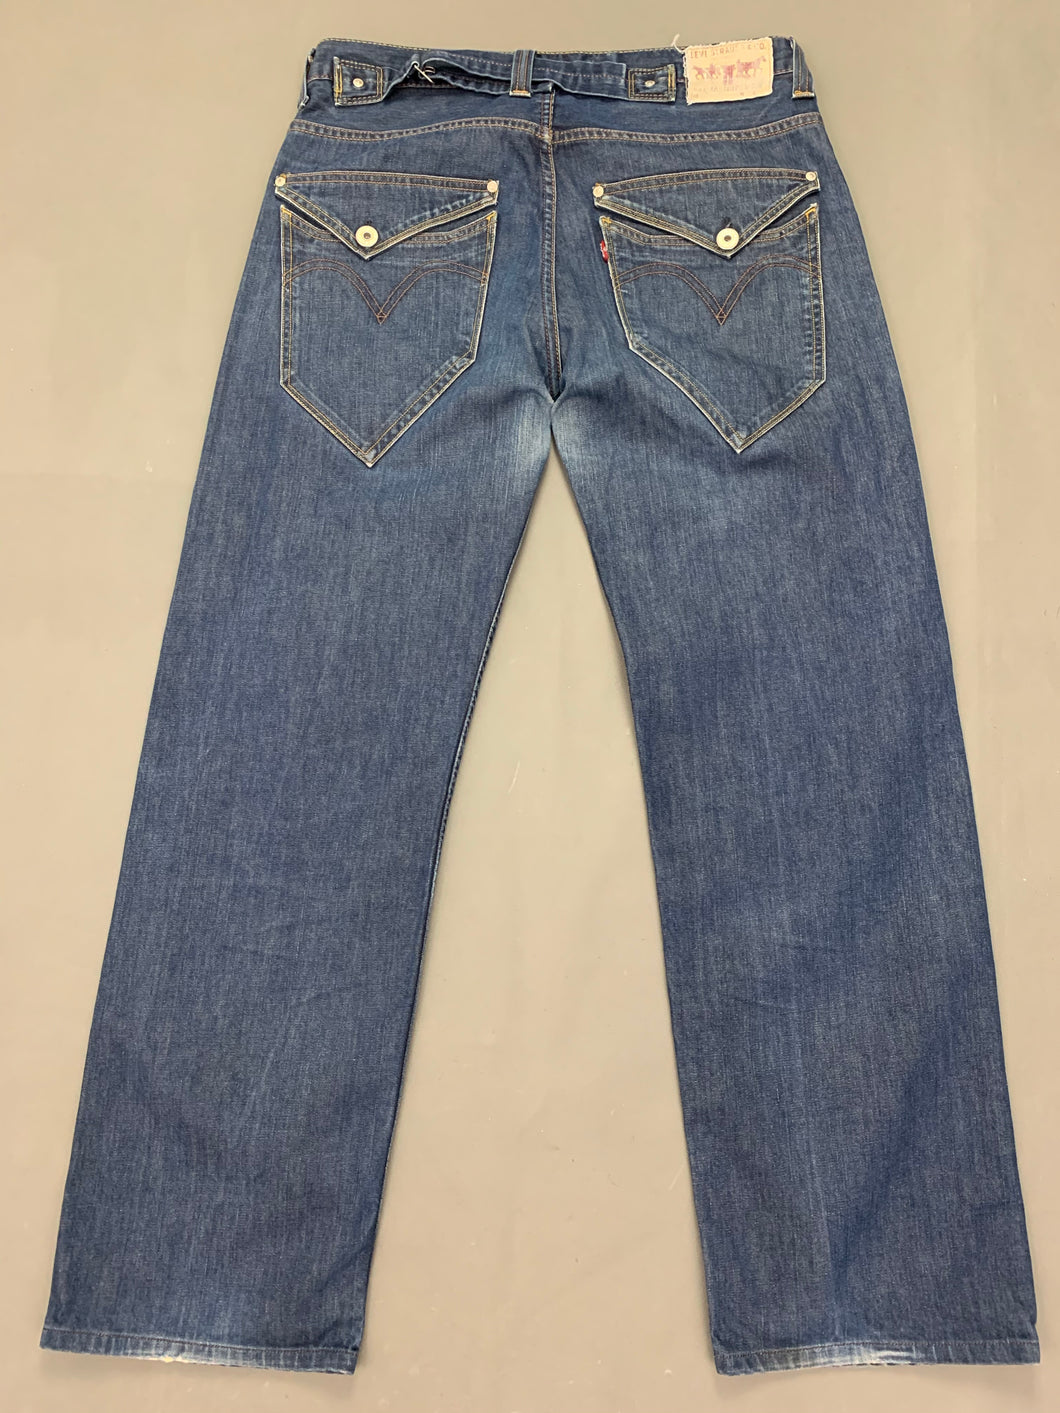 LEVI STRAUSS &Co Mens Blue Denim LEVI'S 503 JEANS Size Waist 34